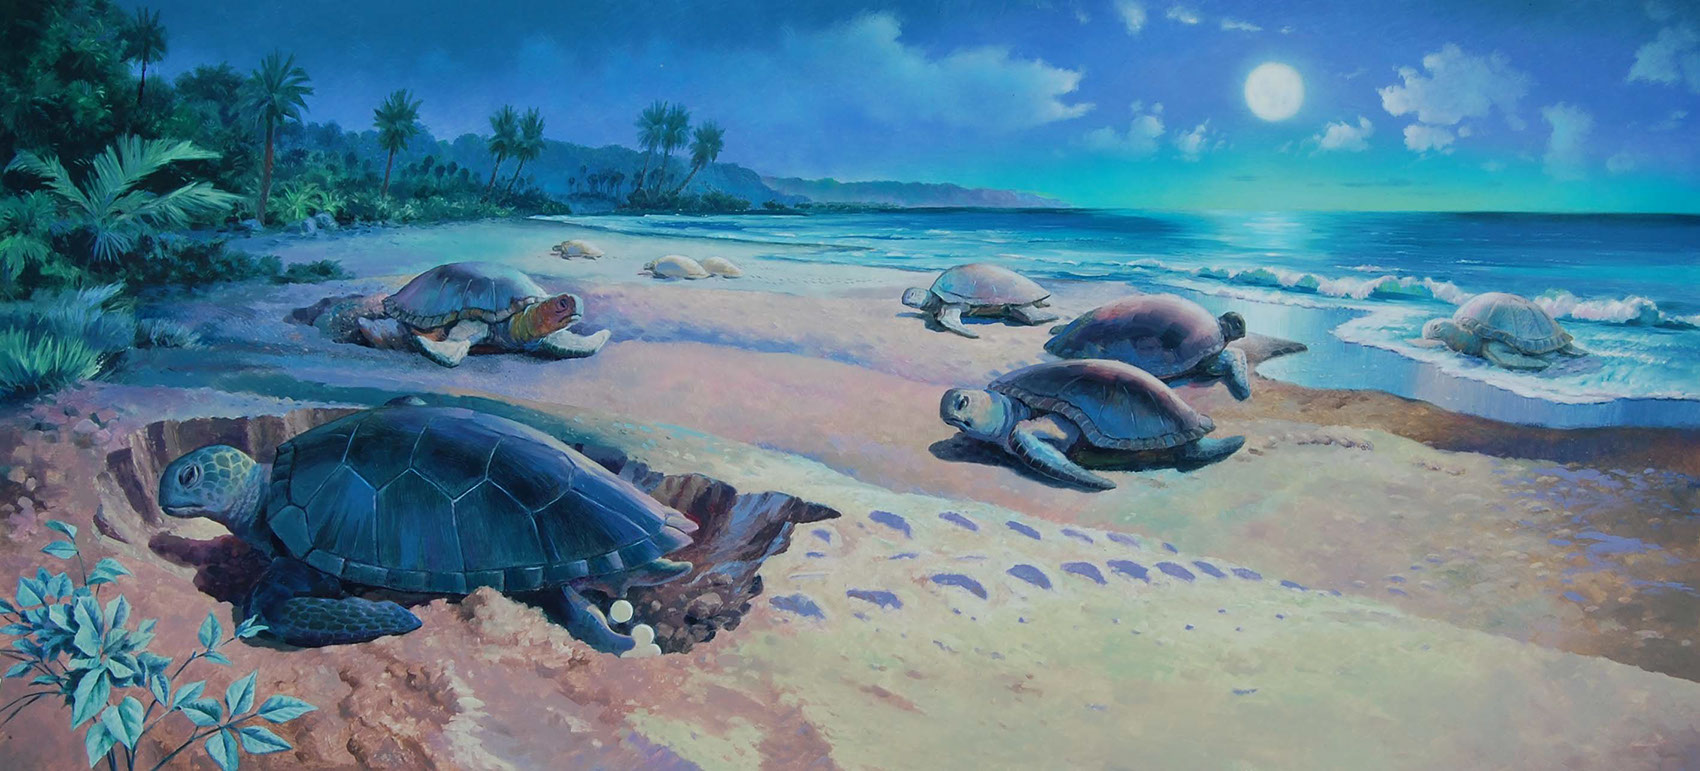 illustration-Landscapes_Turtles walking across the beach-Mike Jaroszko